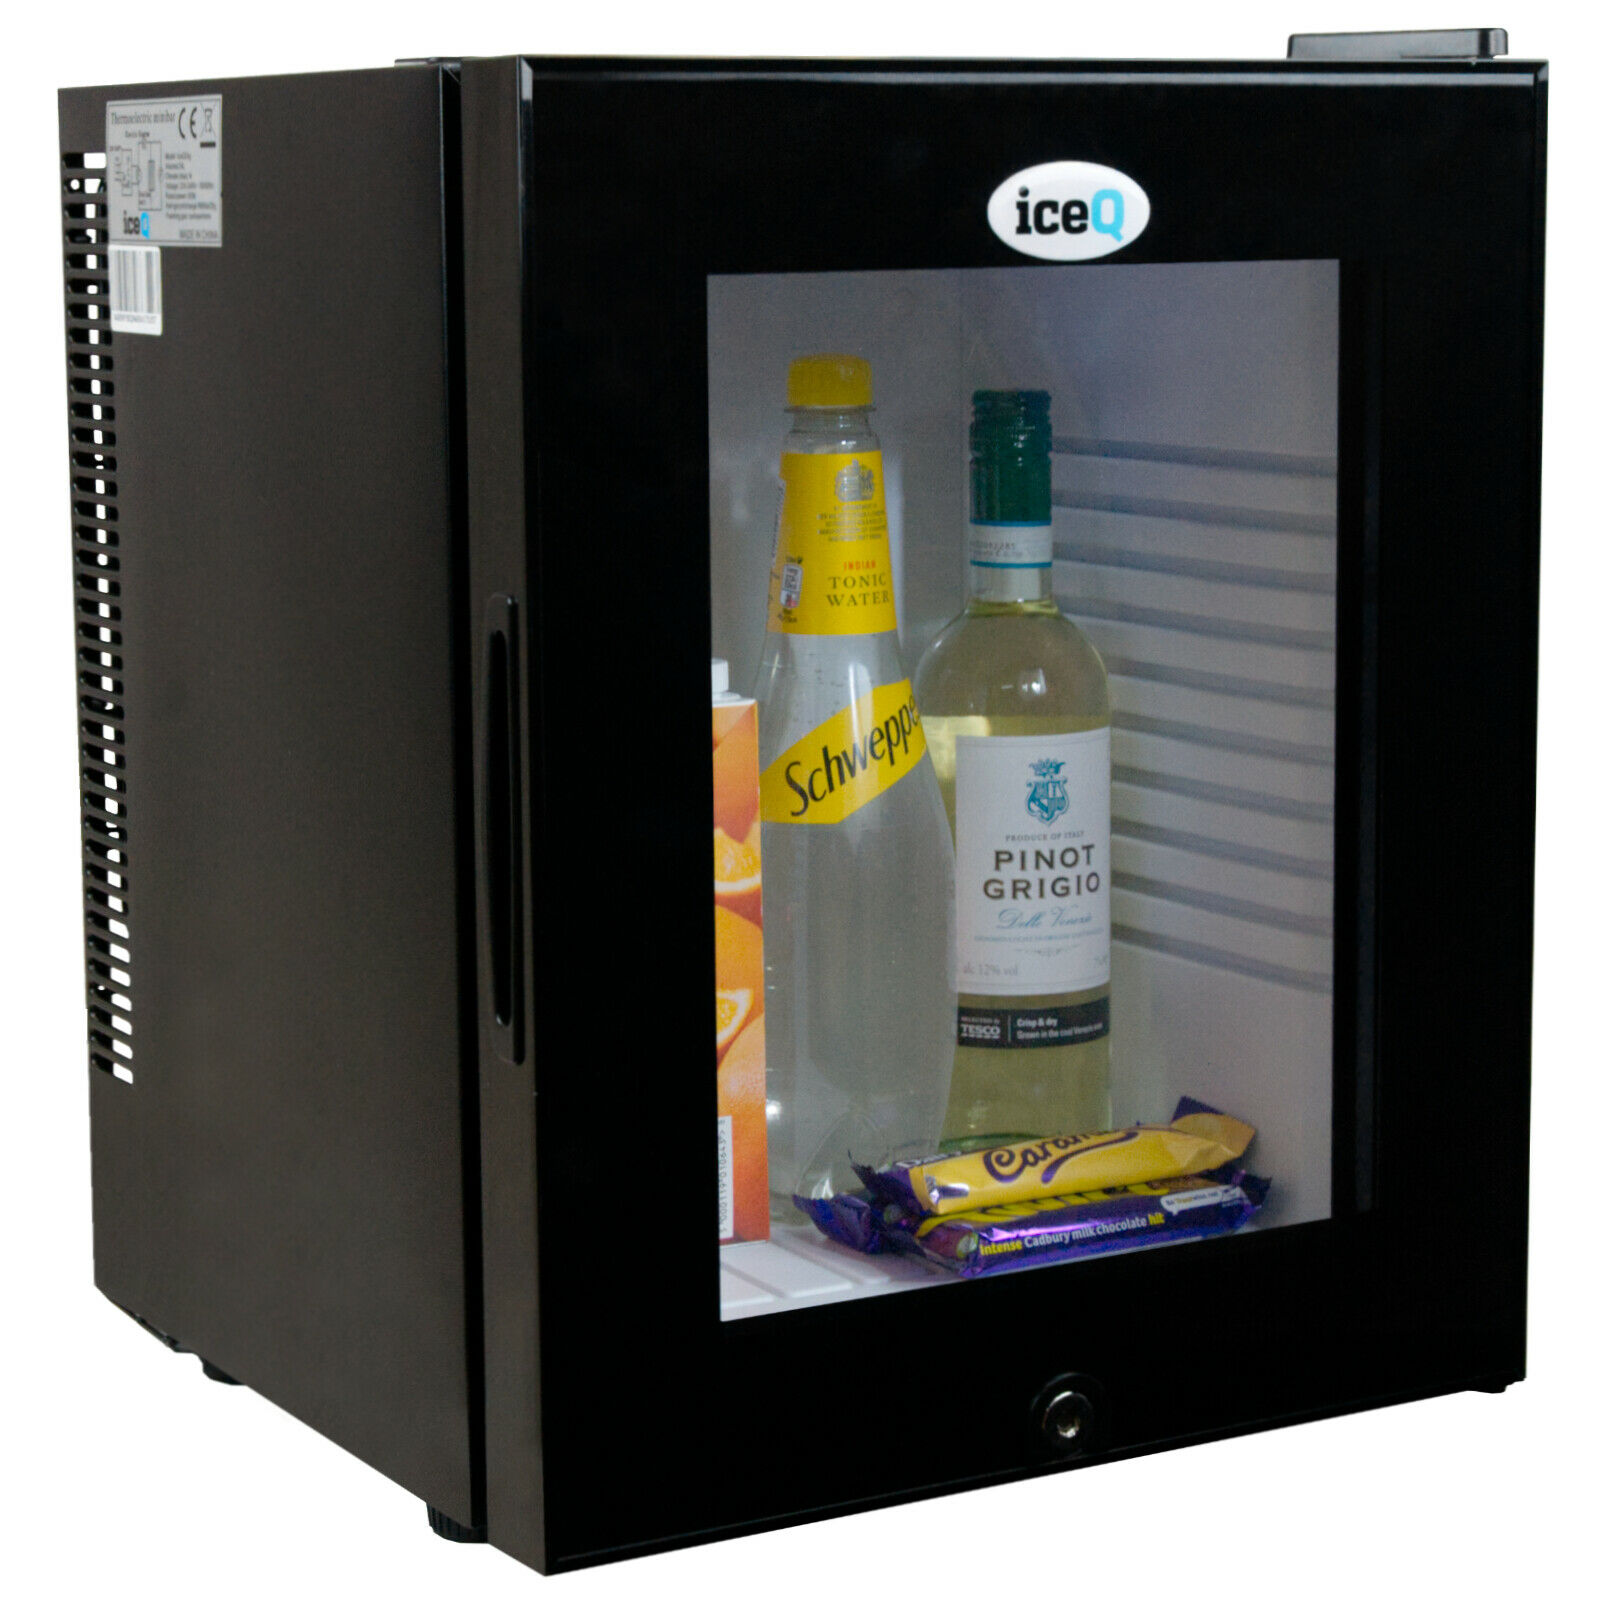 Iceq 24 Ltr Black Glass Door Mini Bar Fridge With Lock Hotels Bb